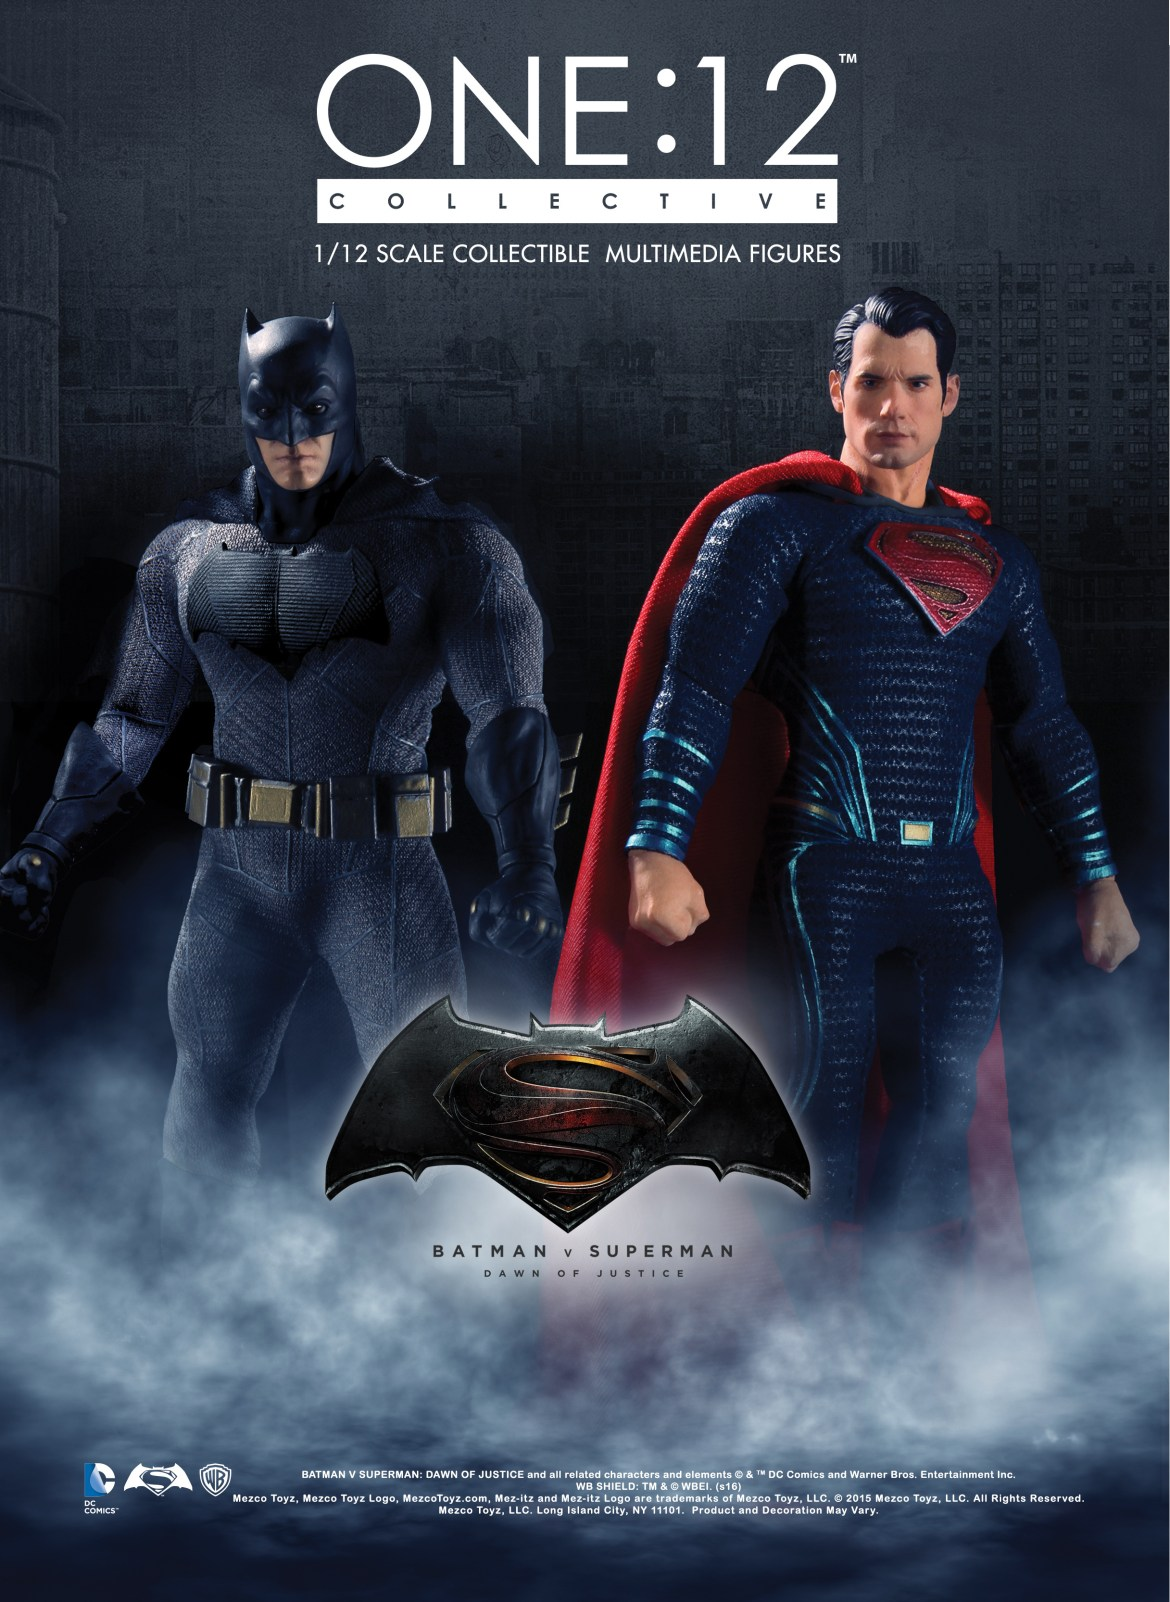 Batman v Superman One 12 Figures Revealed